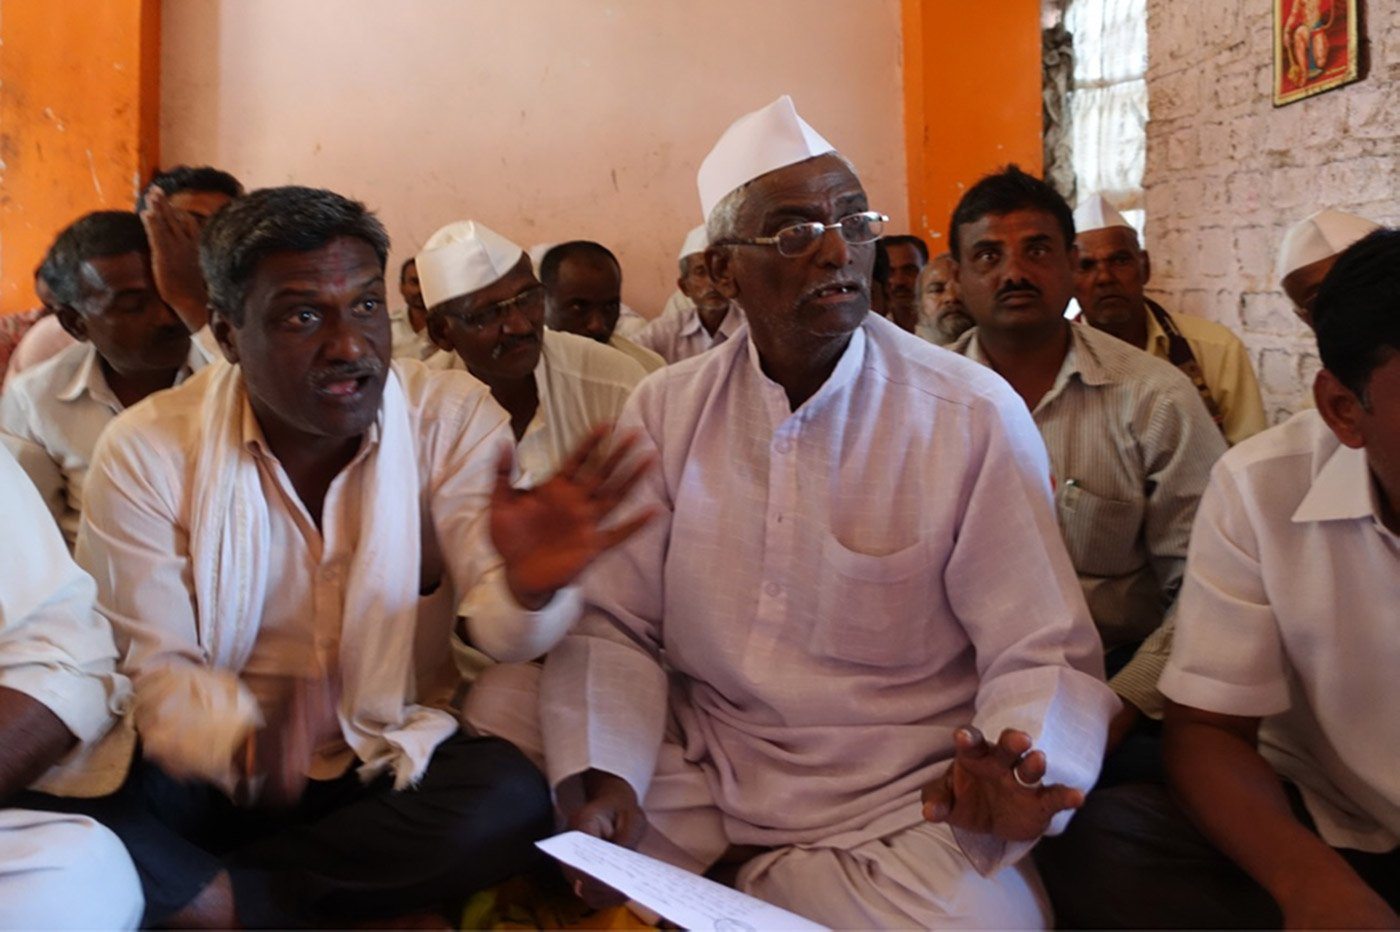 In Nagur village, agitated farmers explain that the loan amounts have been inflated